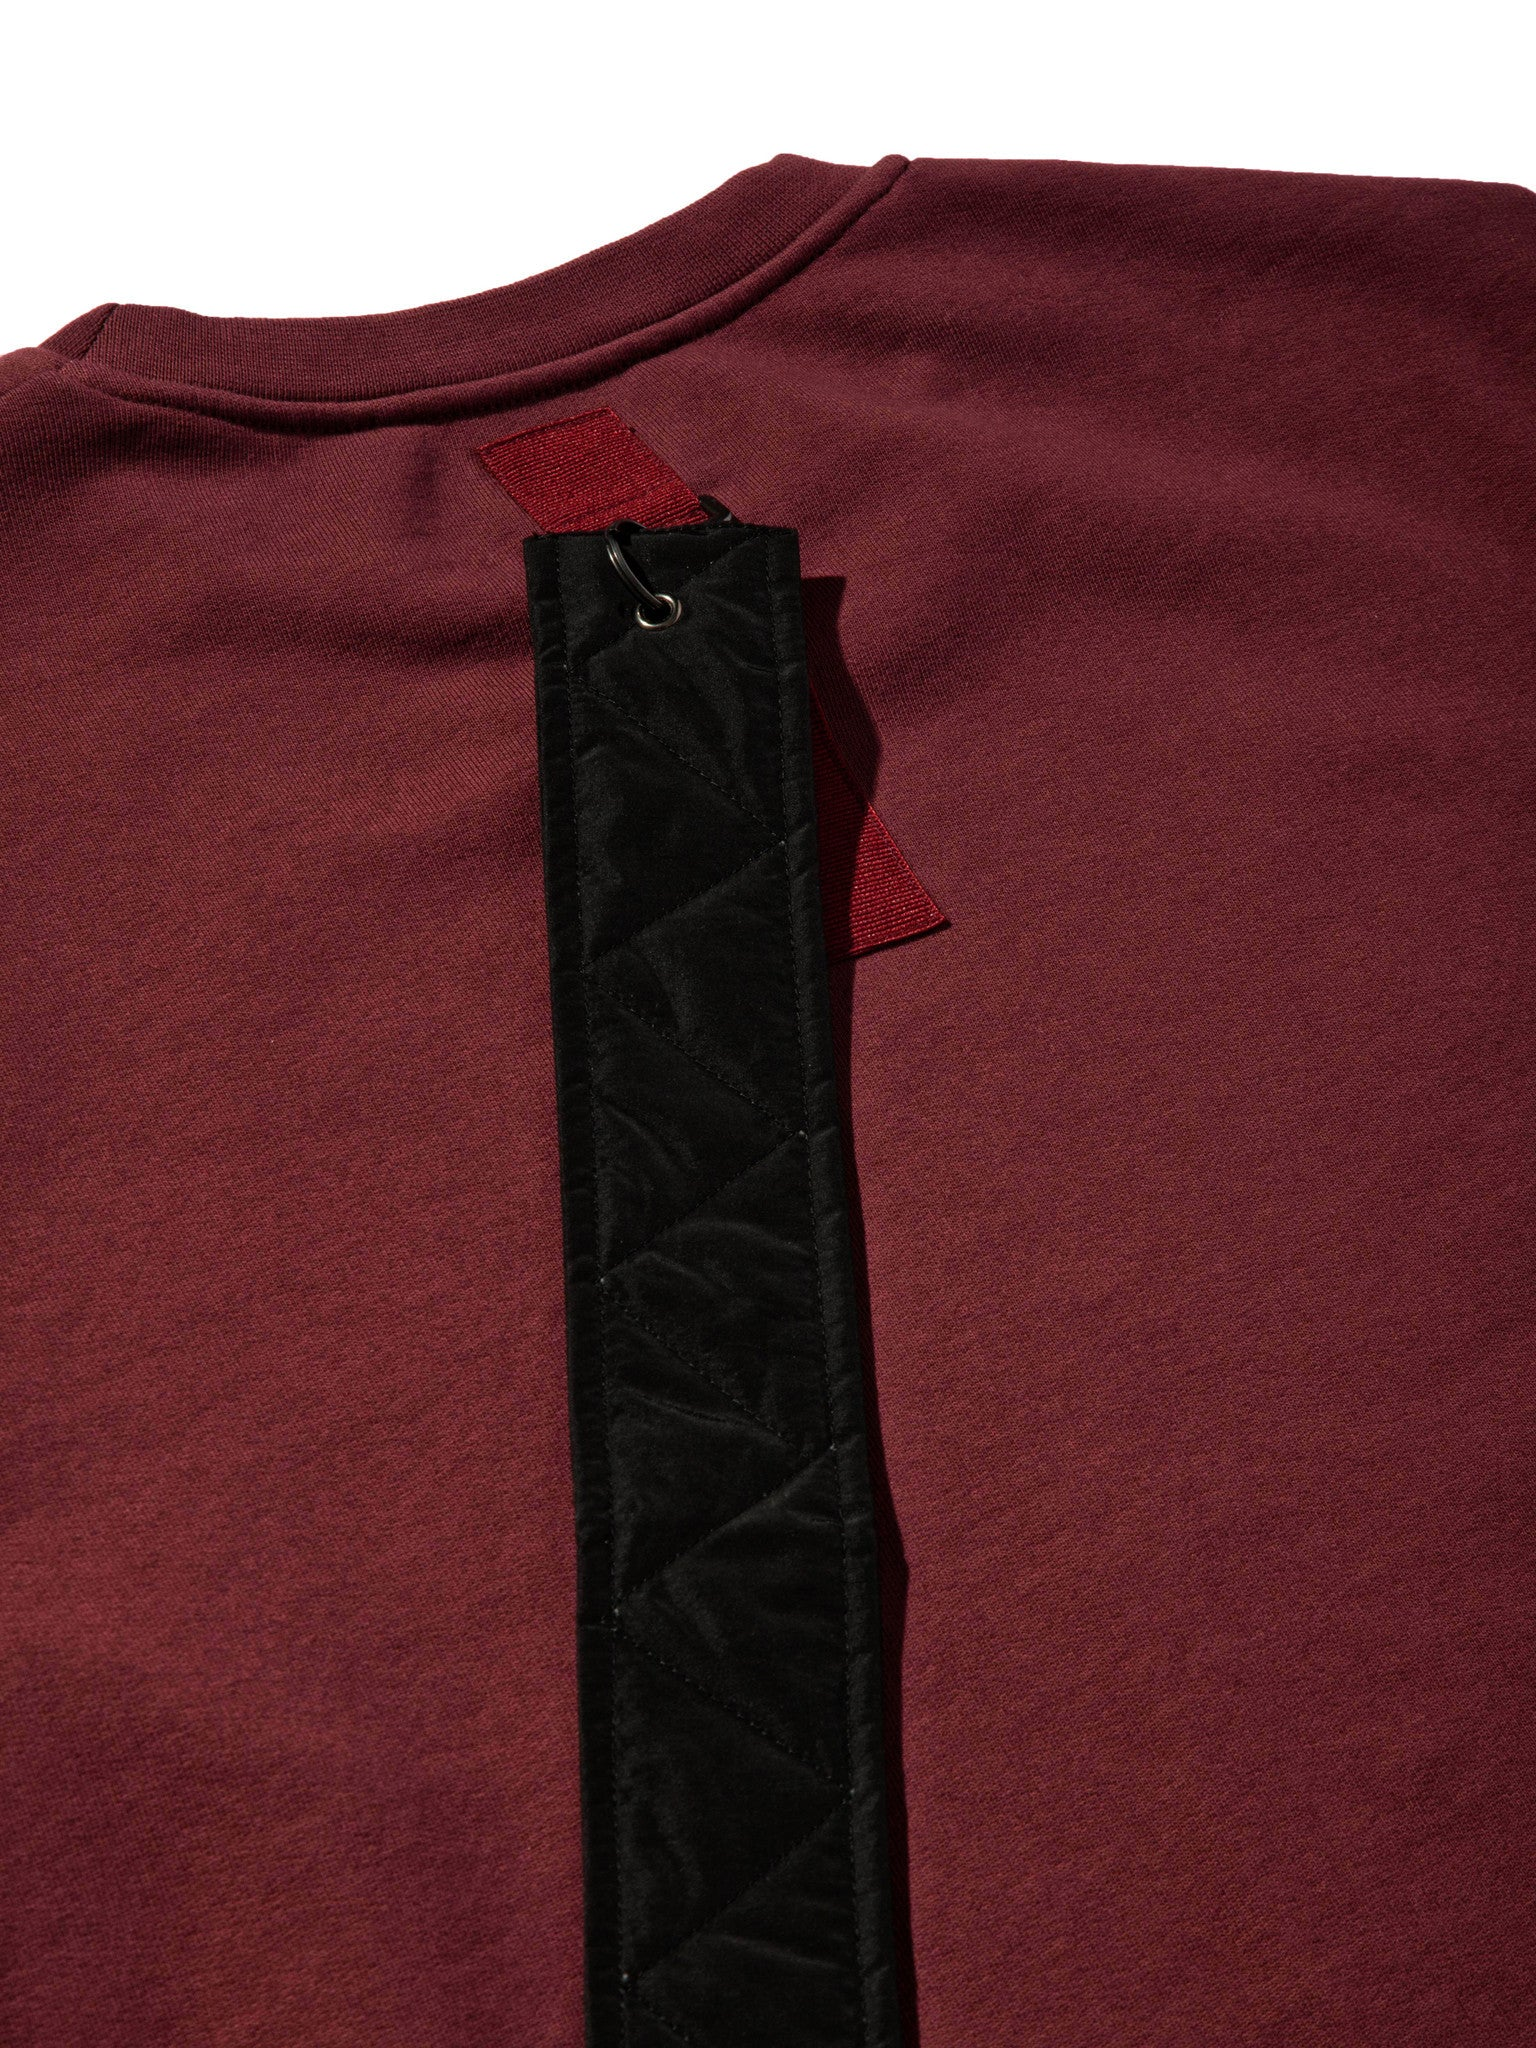 Burgundy Heavy Jersey Sweater Boxy Fit (Detachable Strap) 7